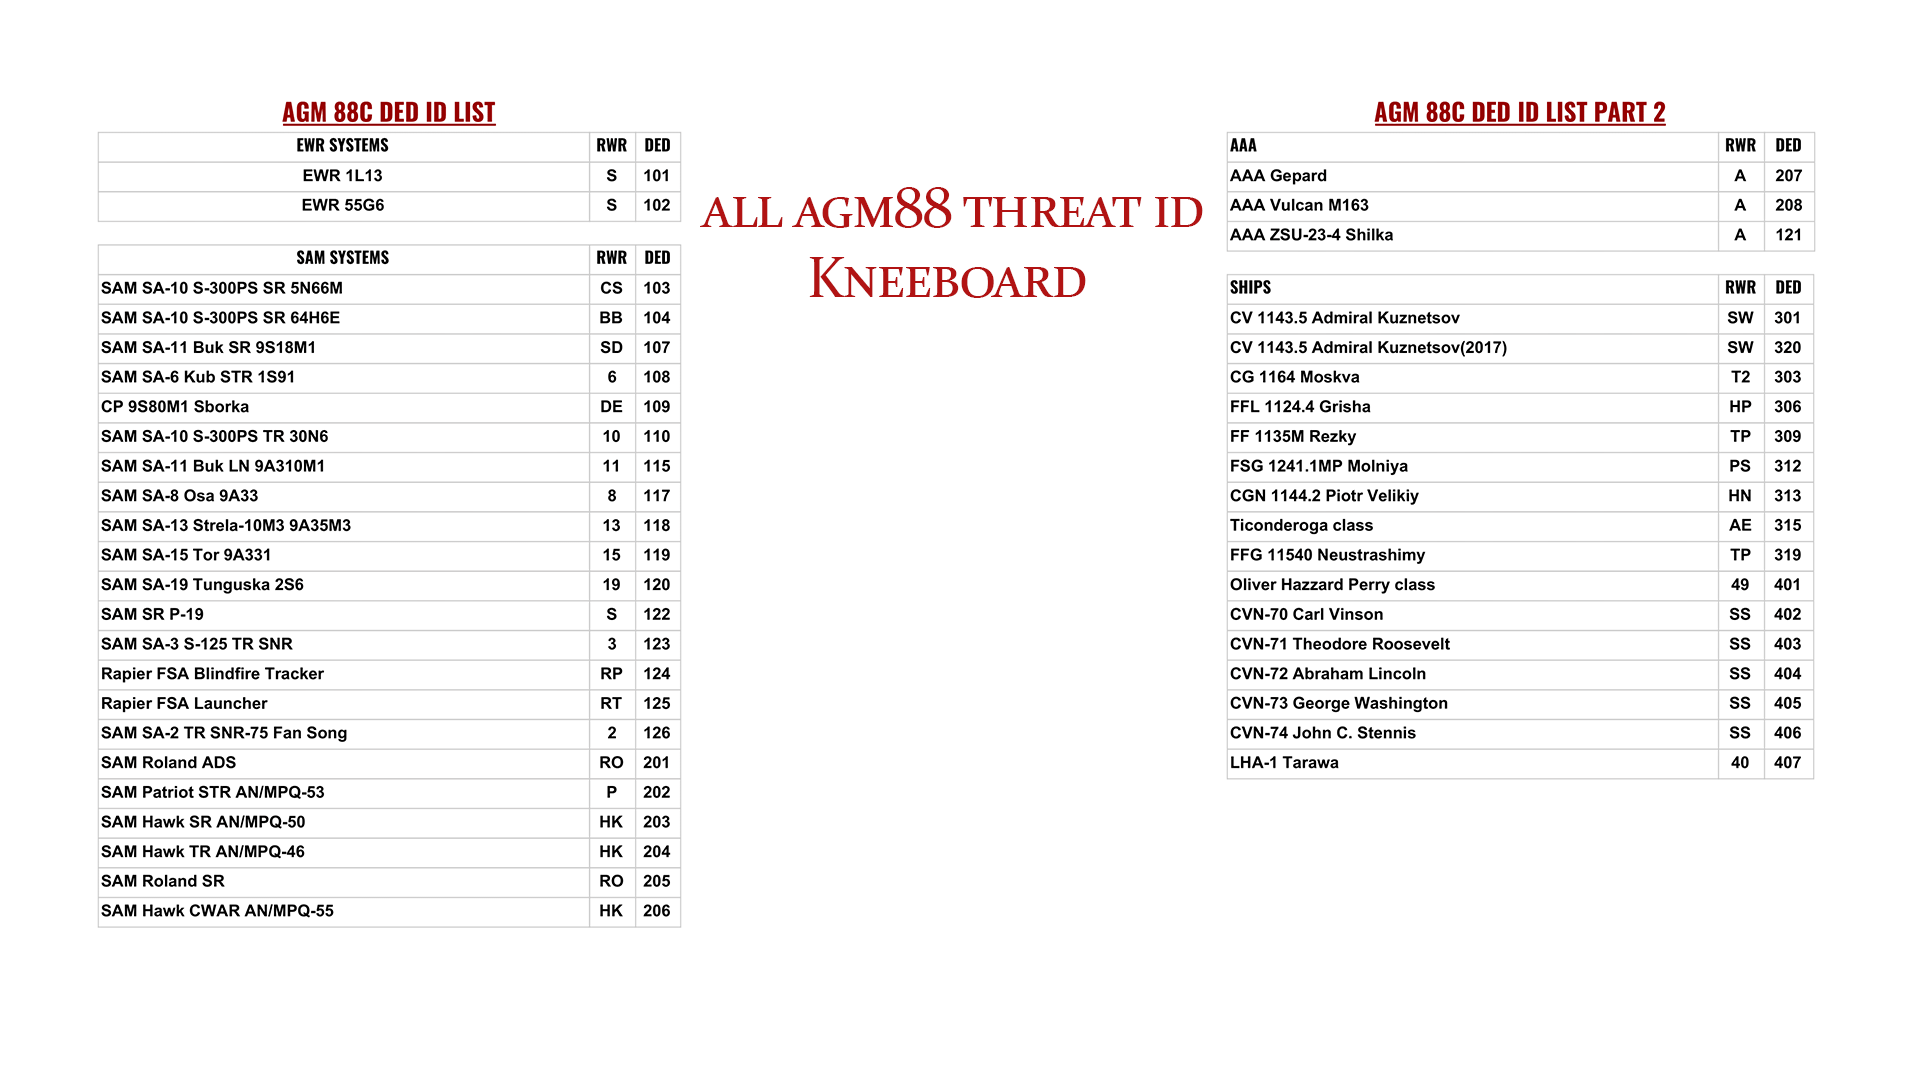 Linda's F16 AGM-88 ALIC ID/DED LIST [FULL] *UPDATED*